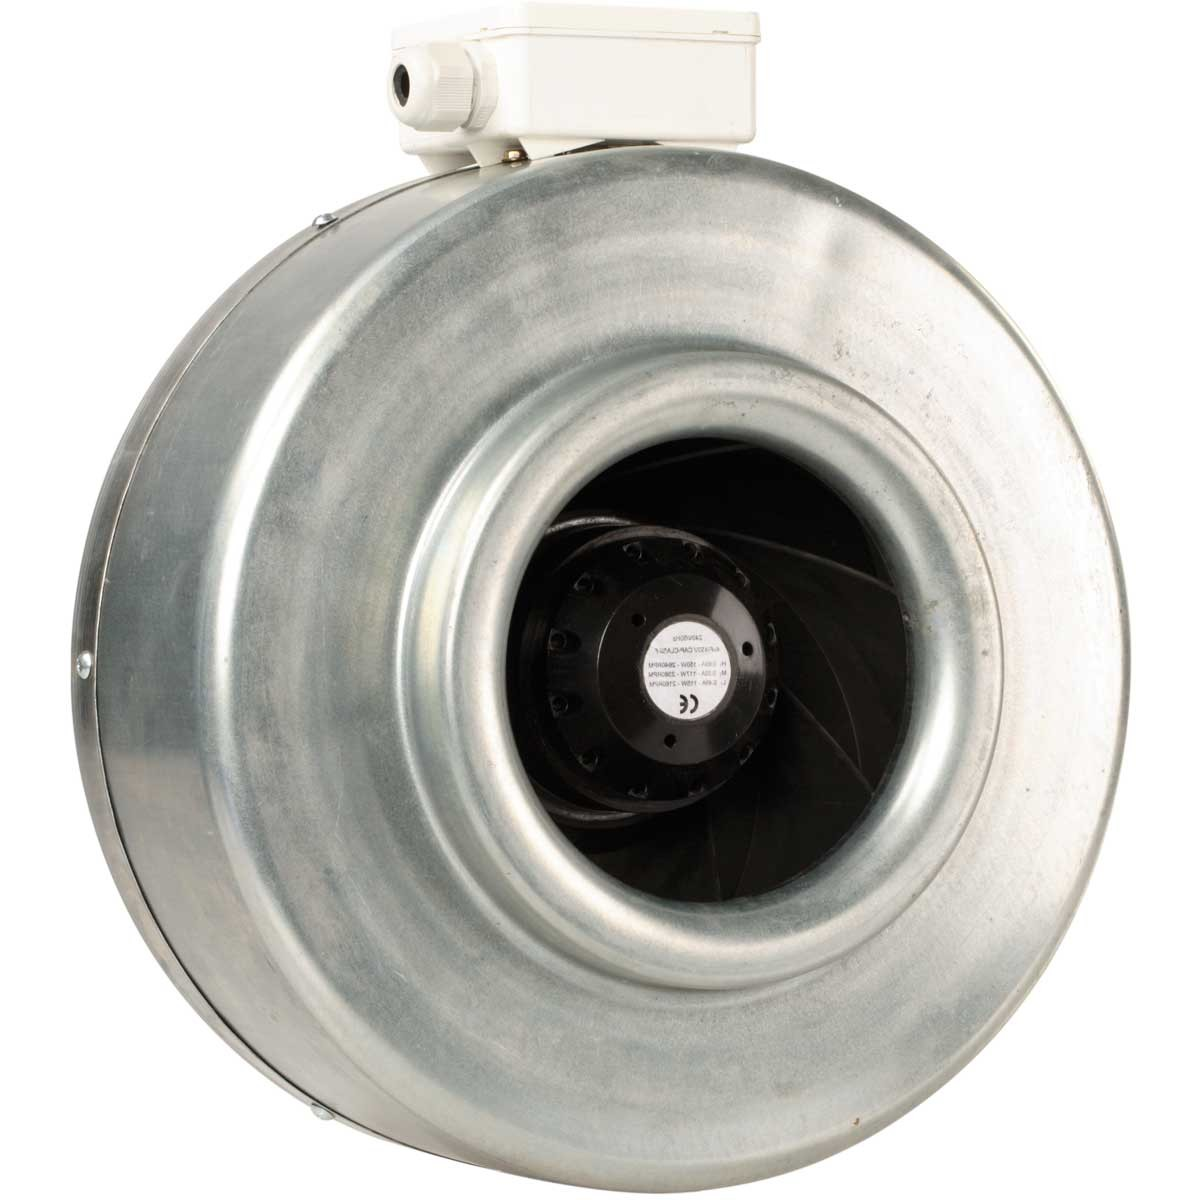 Jetflow-HIT Metal inline - 200mm